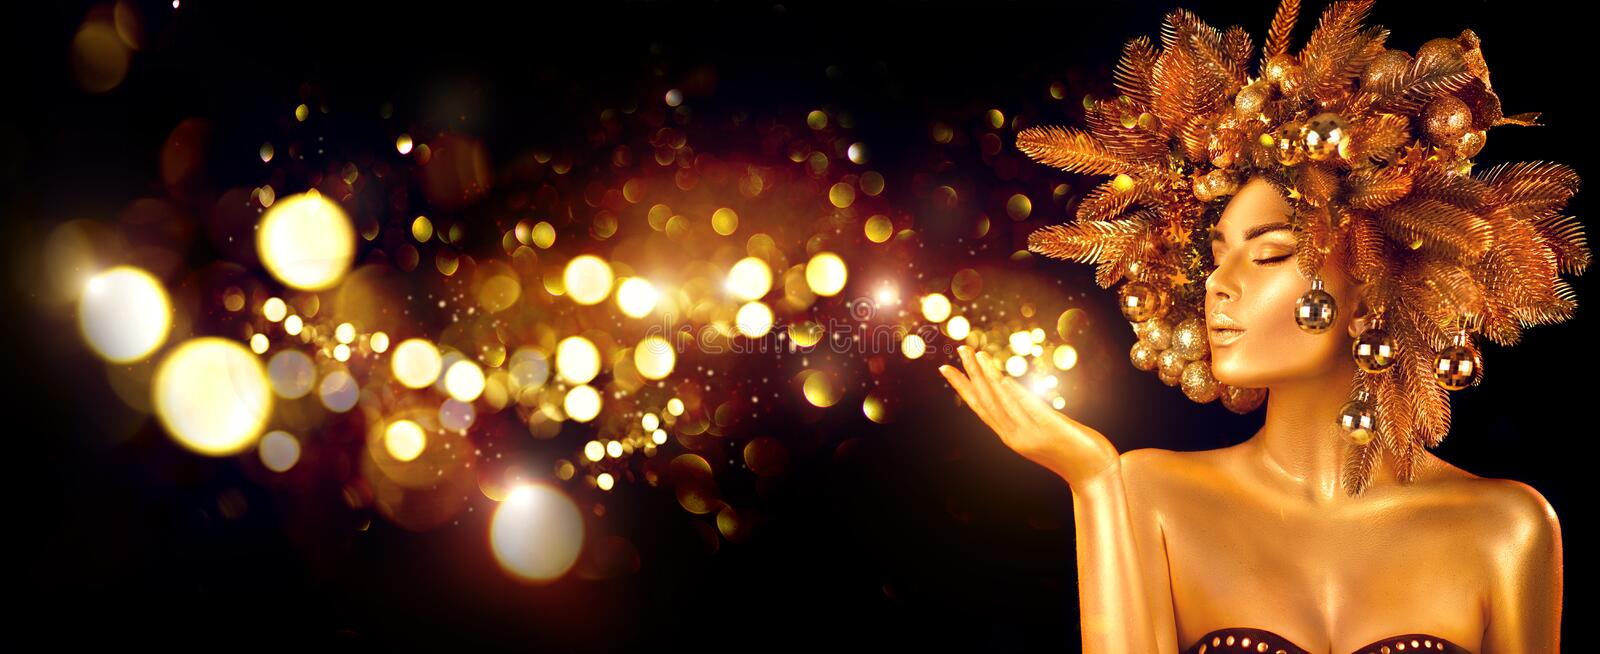 Christmas Wish. Winter Woman with Magic in Her Hand. Beautiful Christmas Tree Holiday Hairstyle and gold skin Makeup royalty free stock images